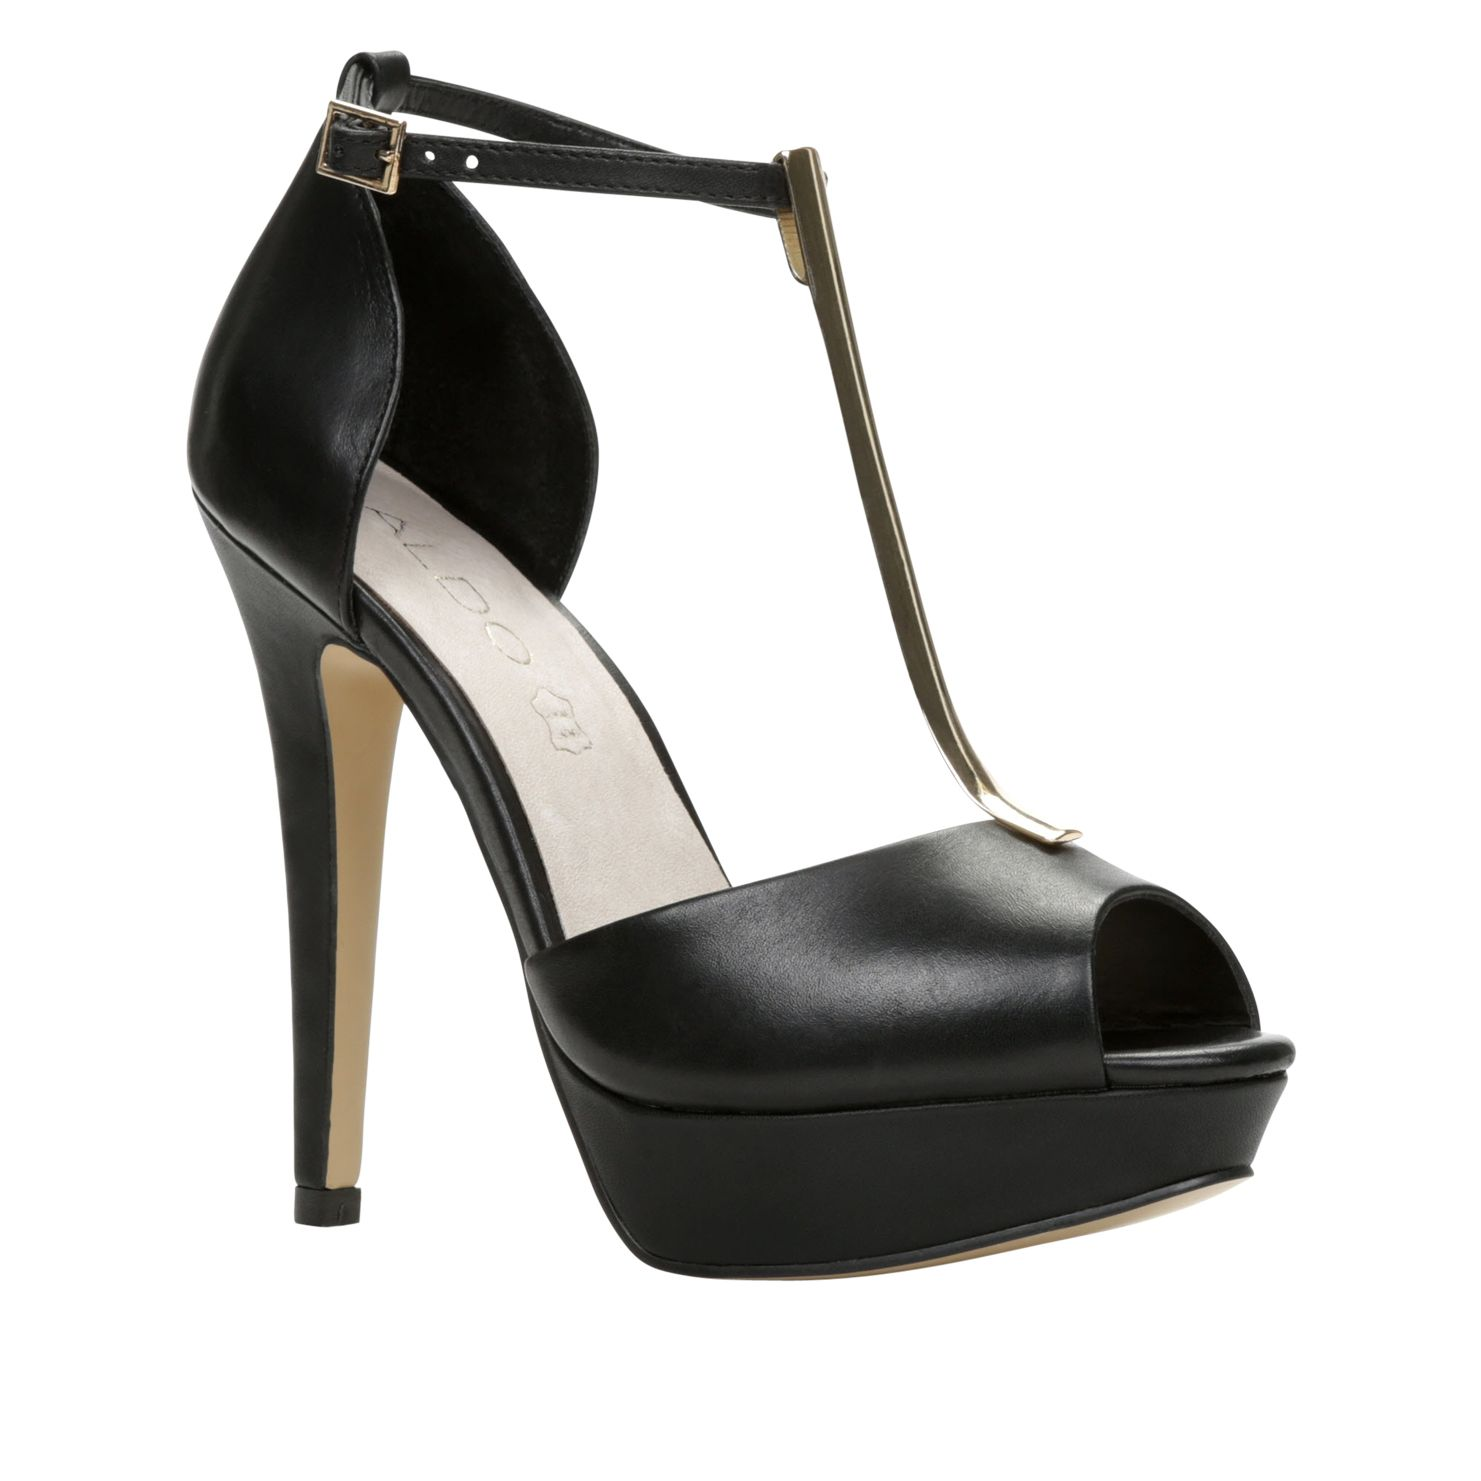 Valturva peep toe platform shoes